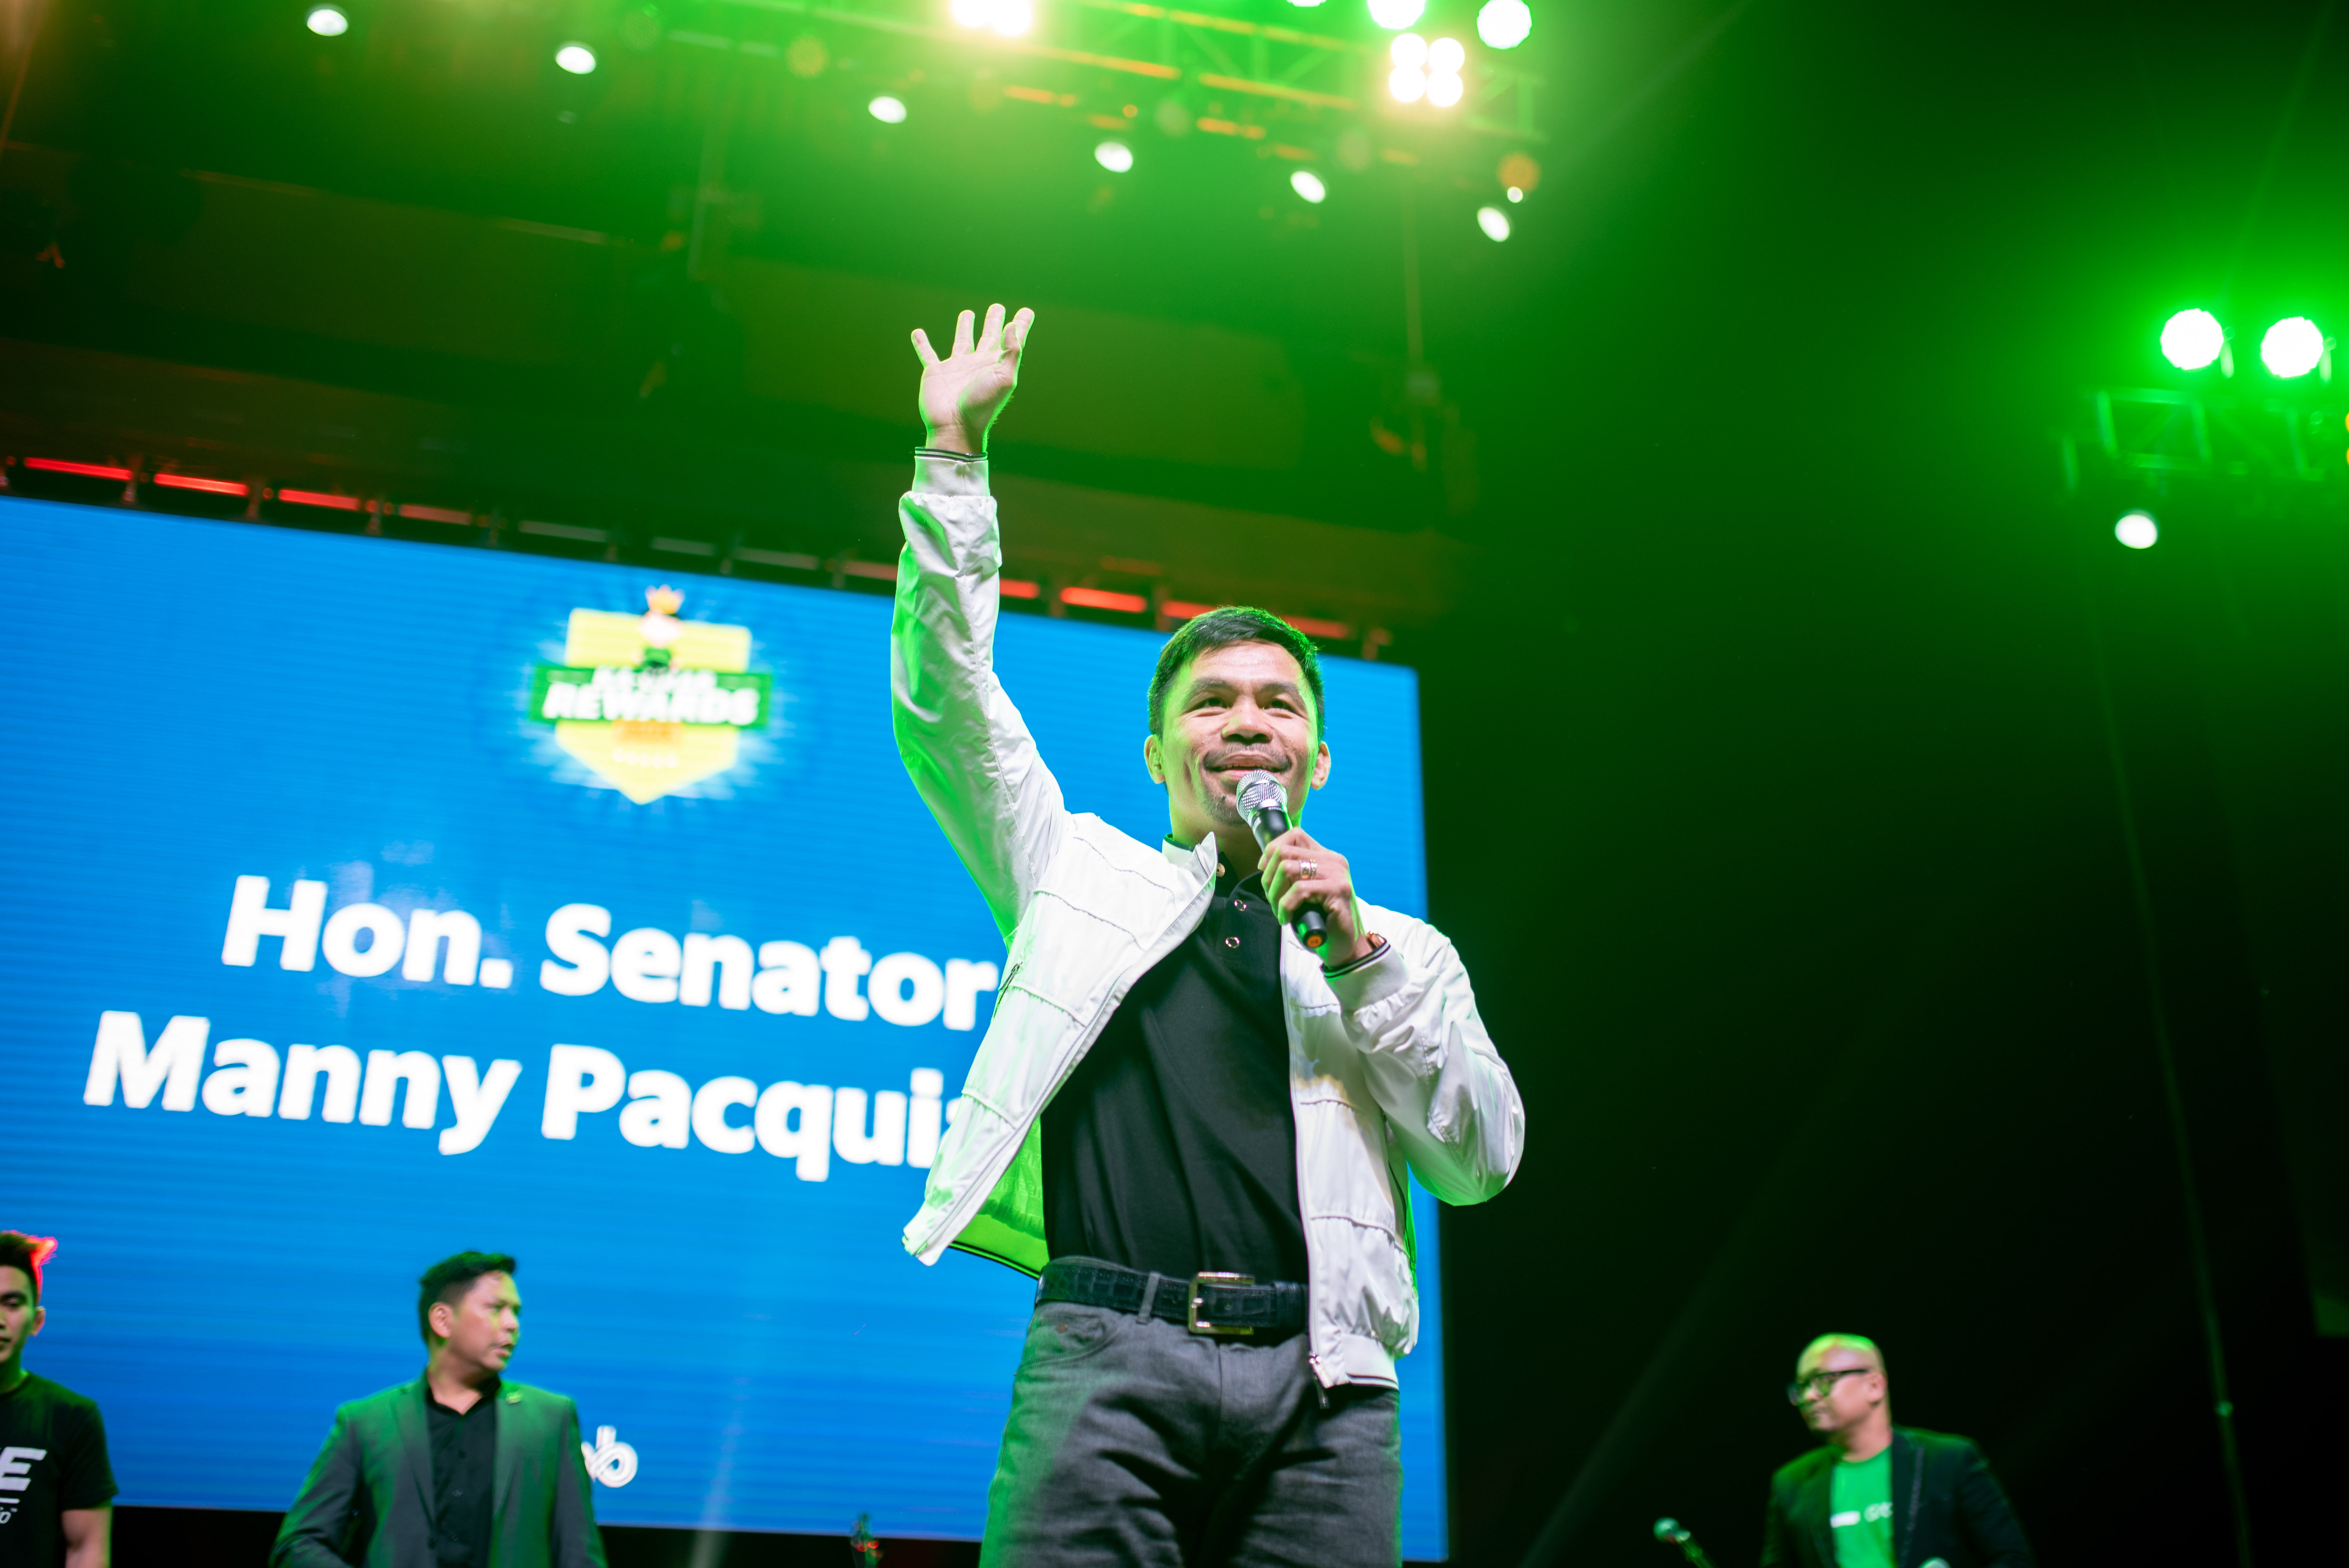 Pacquiao set to Launch PacPay, Connect Global Influencers, Brands and Fans